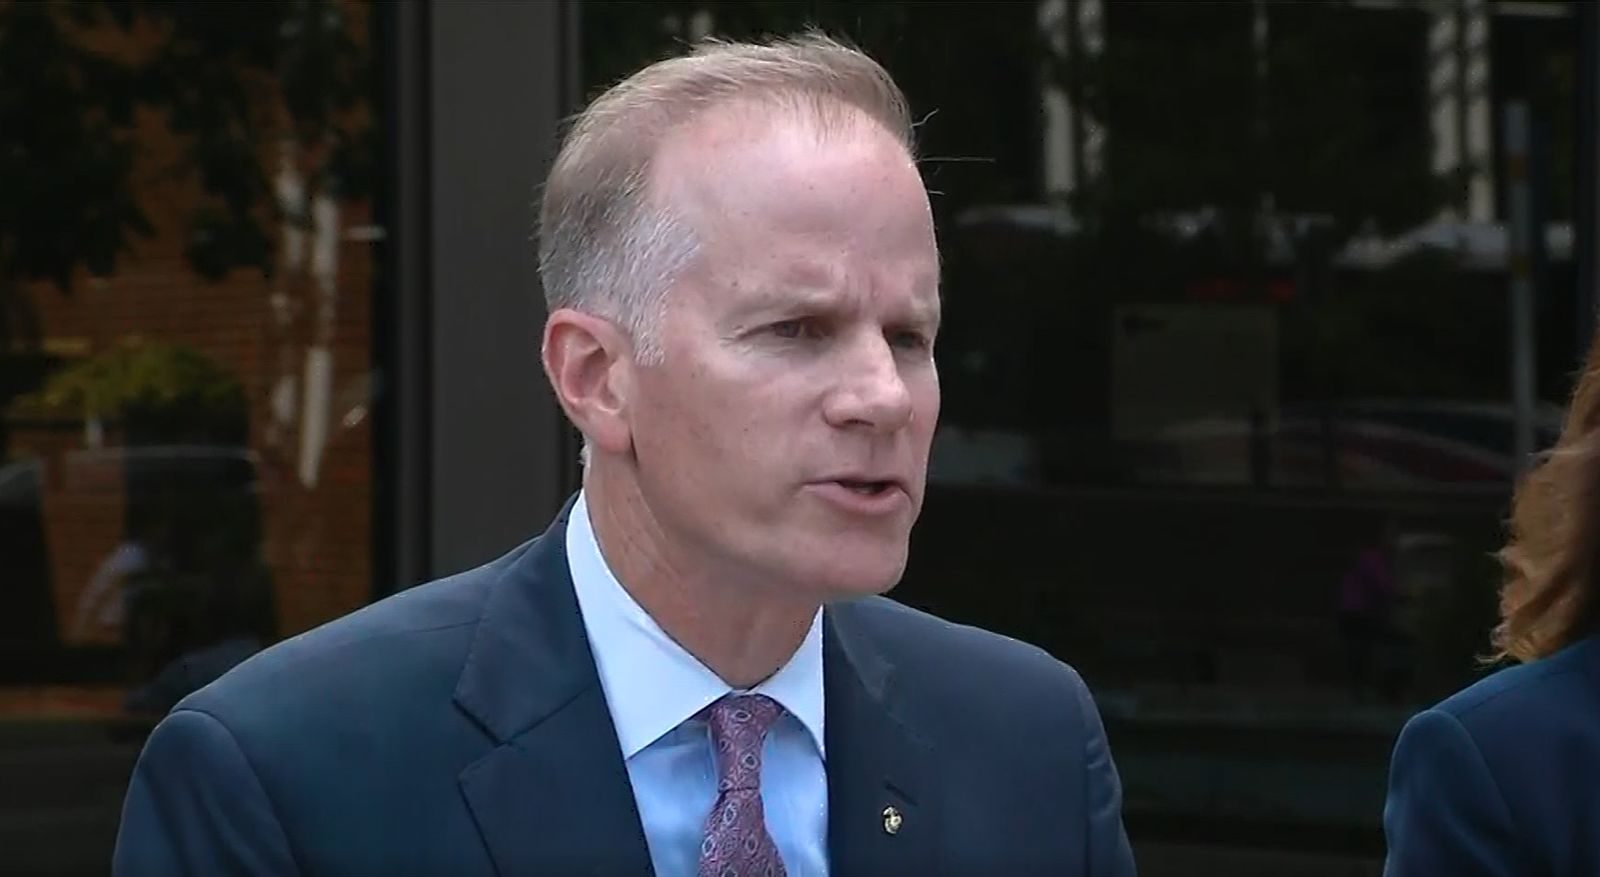 US Attorney William McSwain criticizes Philadelphia's district attorney in the wake of a police shootout. (KYW/CNN Newsource)